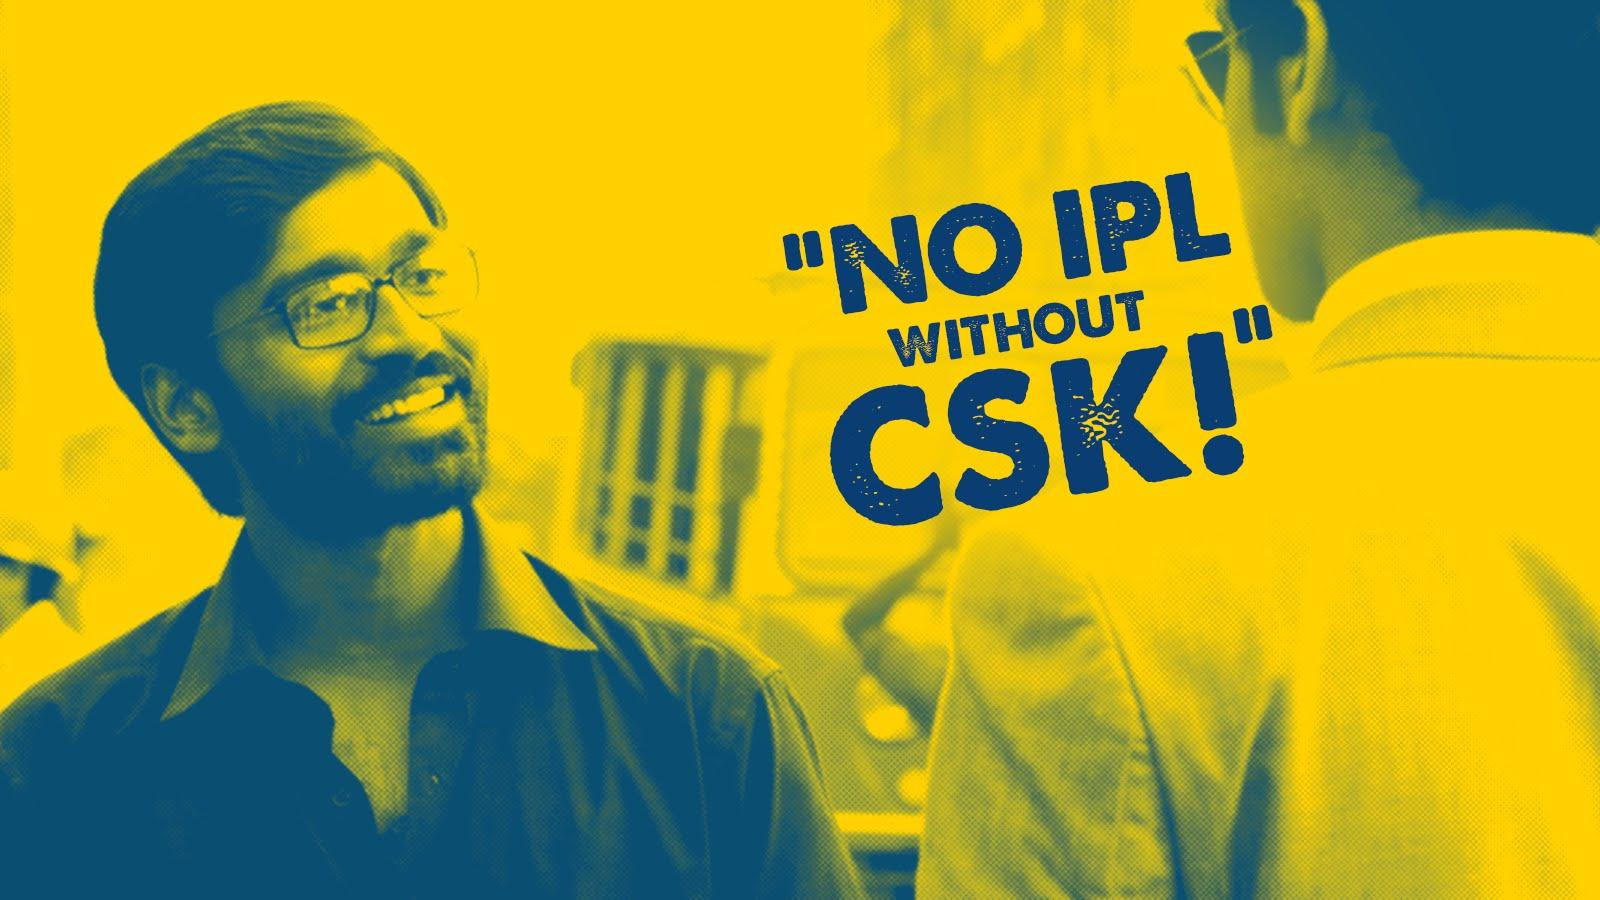 Csk Logo Wallpapers Wallpaper Cave